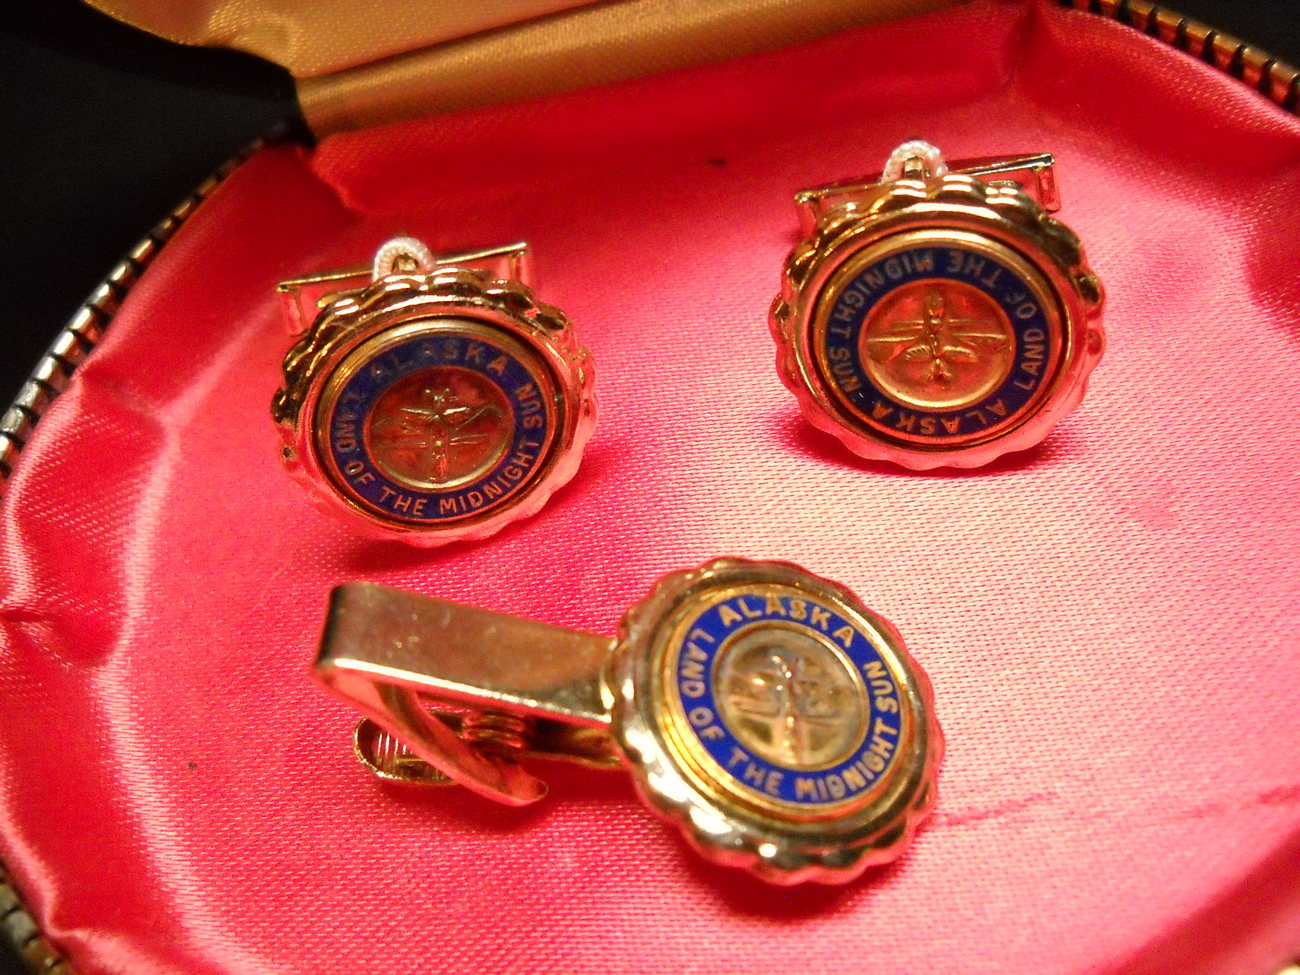 Stag Cuff Links and Tie Bar Alaska Land of the Midnight Sun in Presentation Box